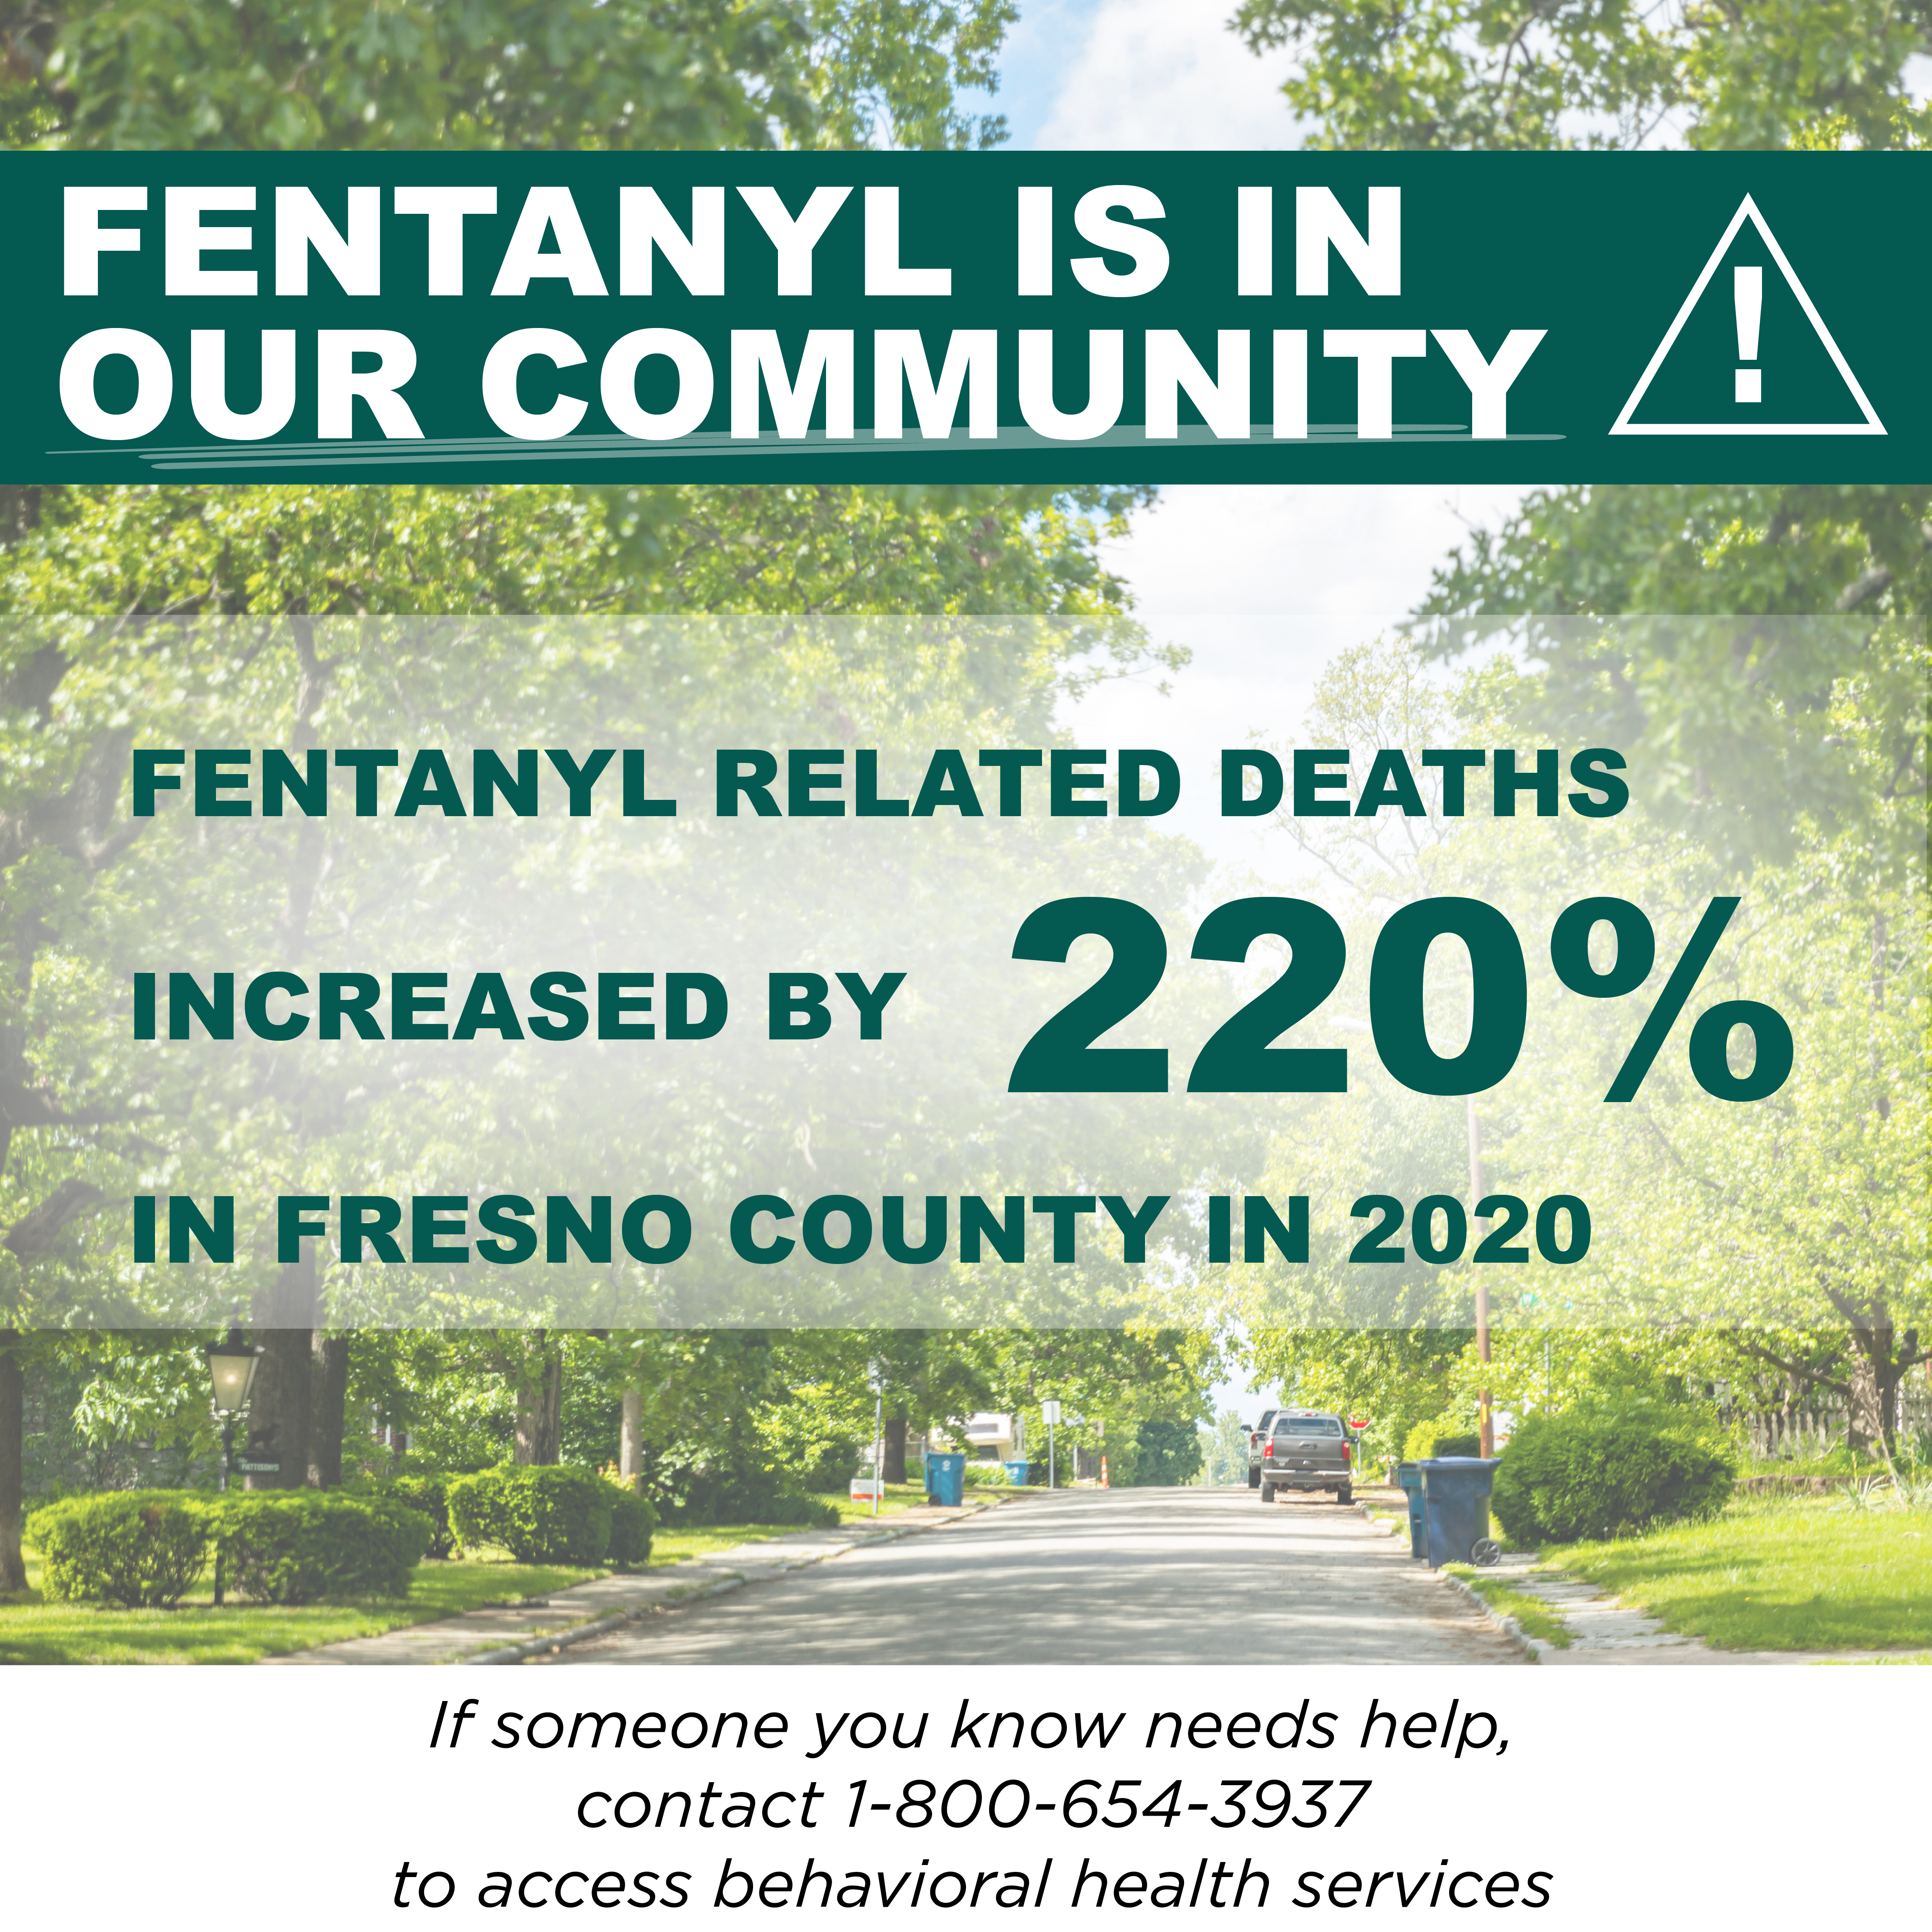 Fentanyl is in Our Community